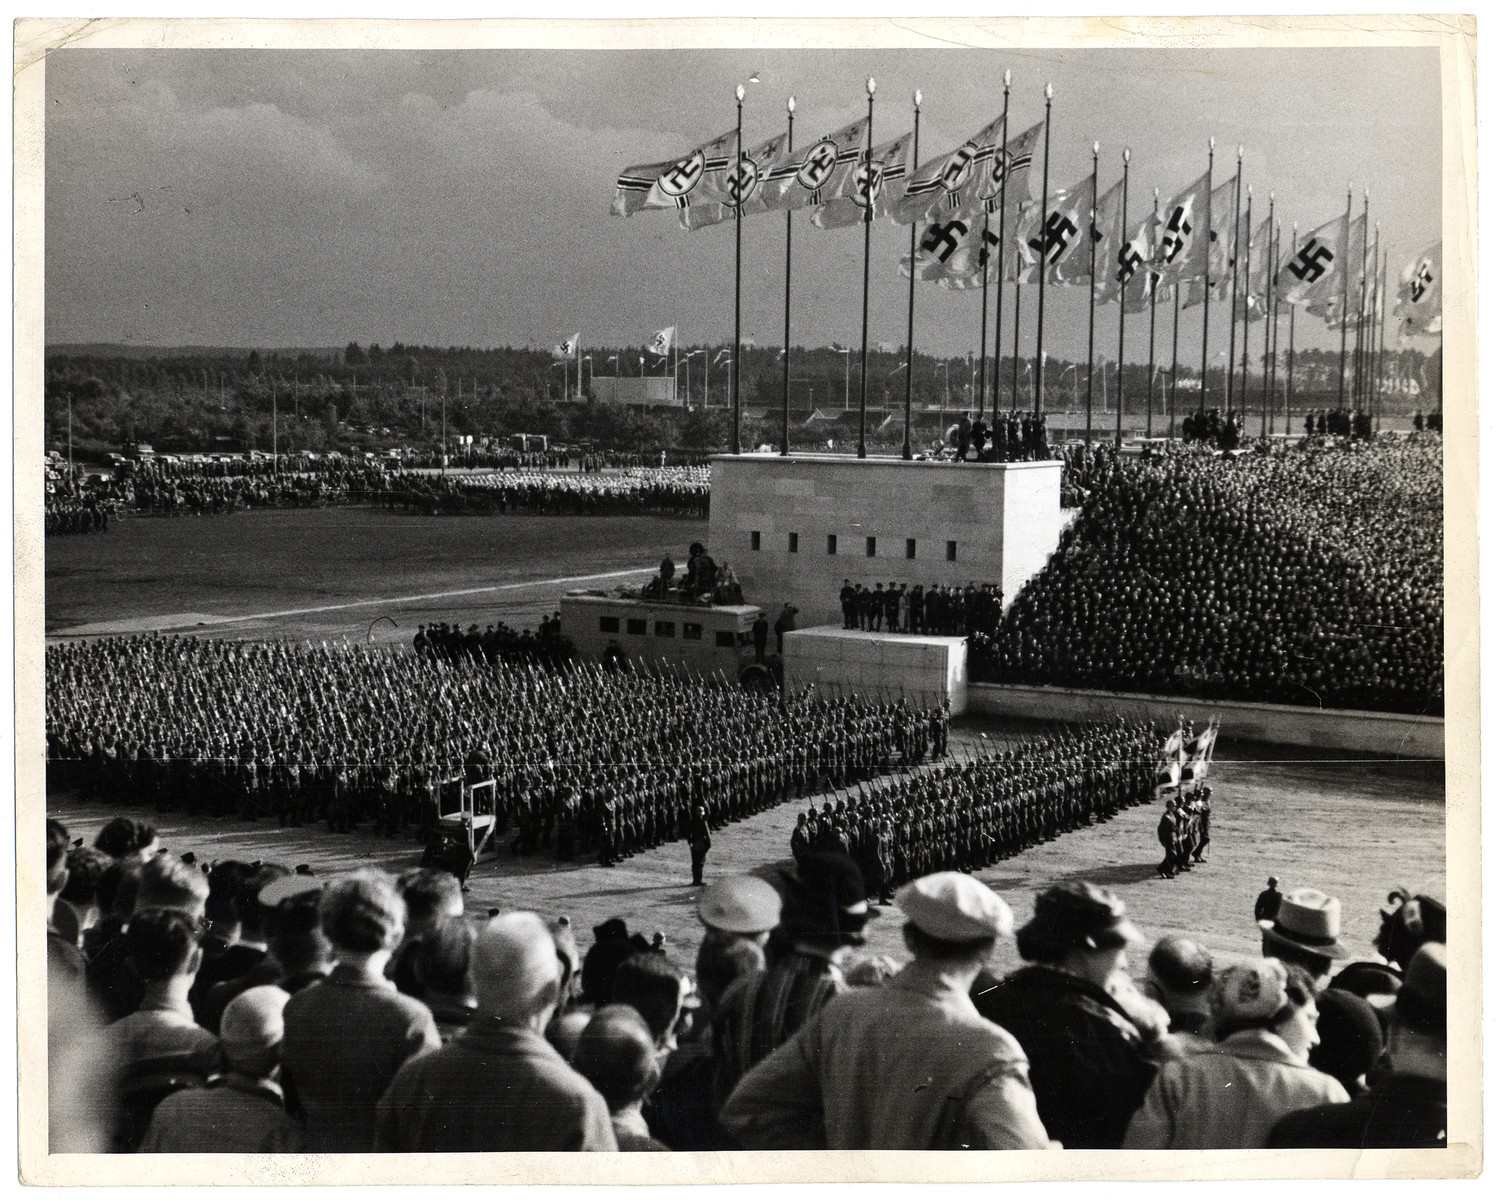 German soldiers parade in formation during war games at the Nazi Party Congress in Nuremberg.